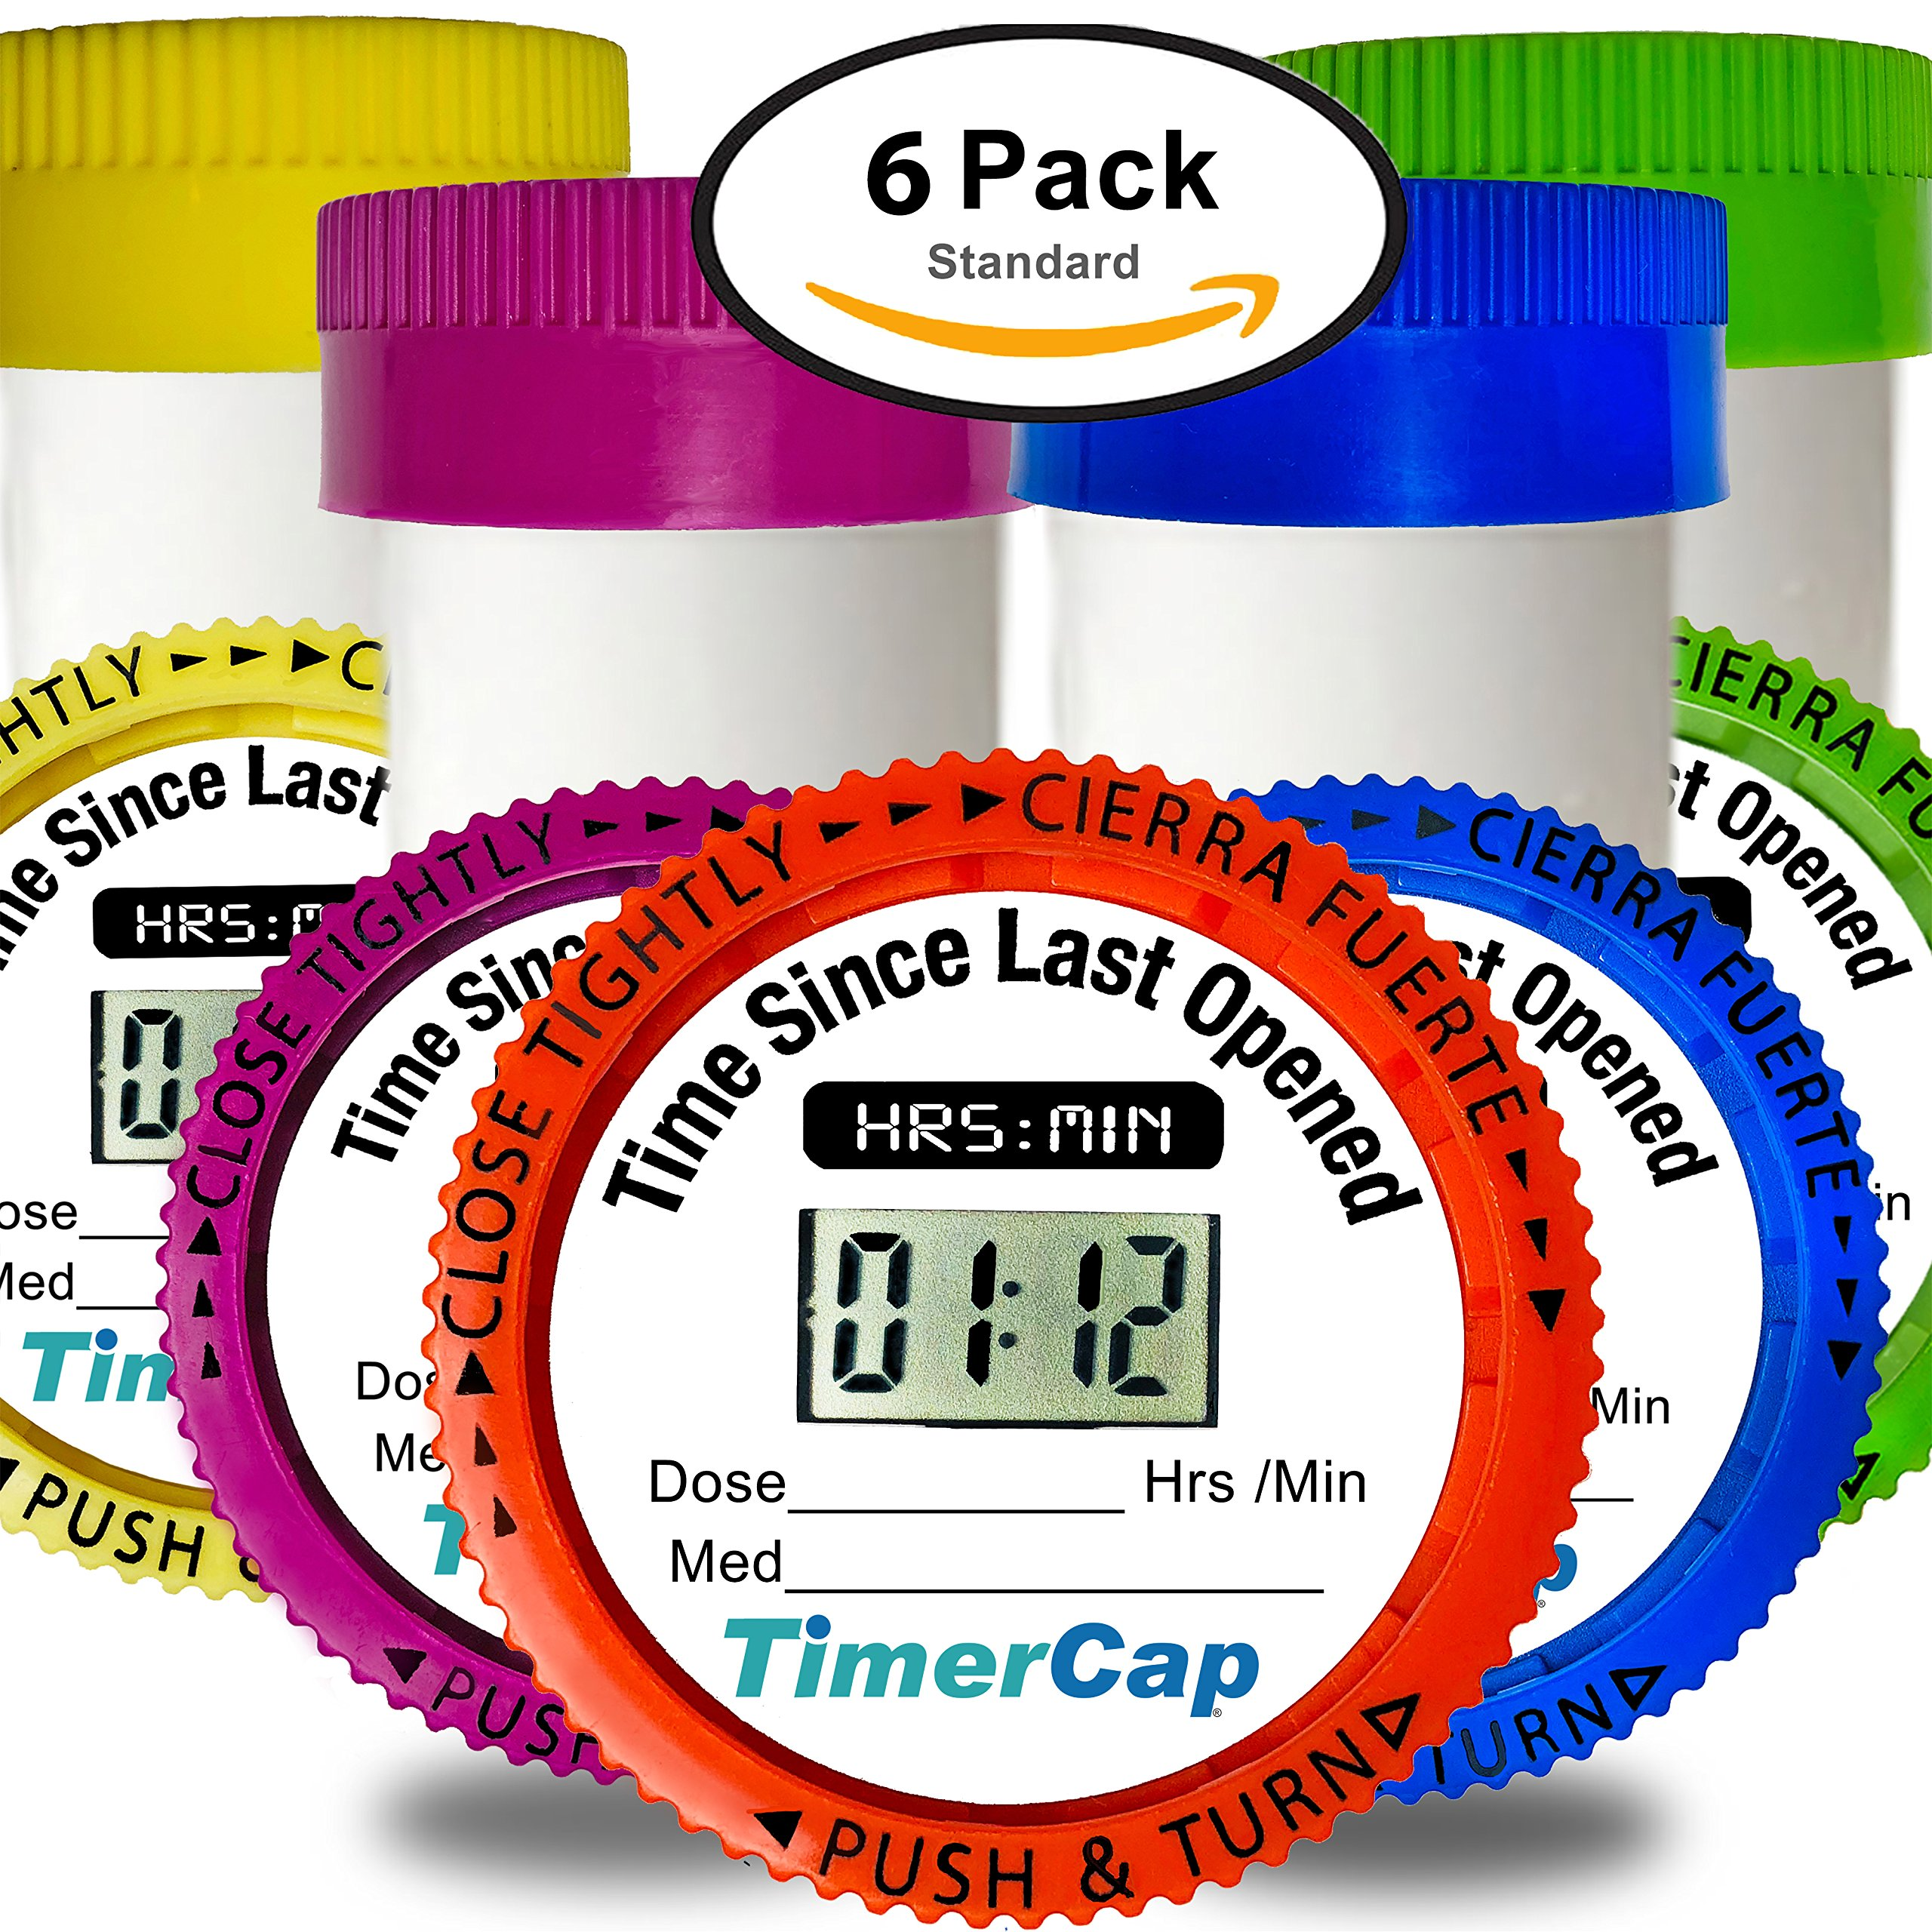 TimerCap Automatically Records Built-in Stopwatch Bottle Cap For Medication Organizer | Child Resistant (6 Pack, Standard, Multi Color)